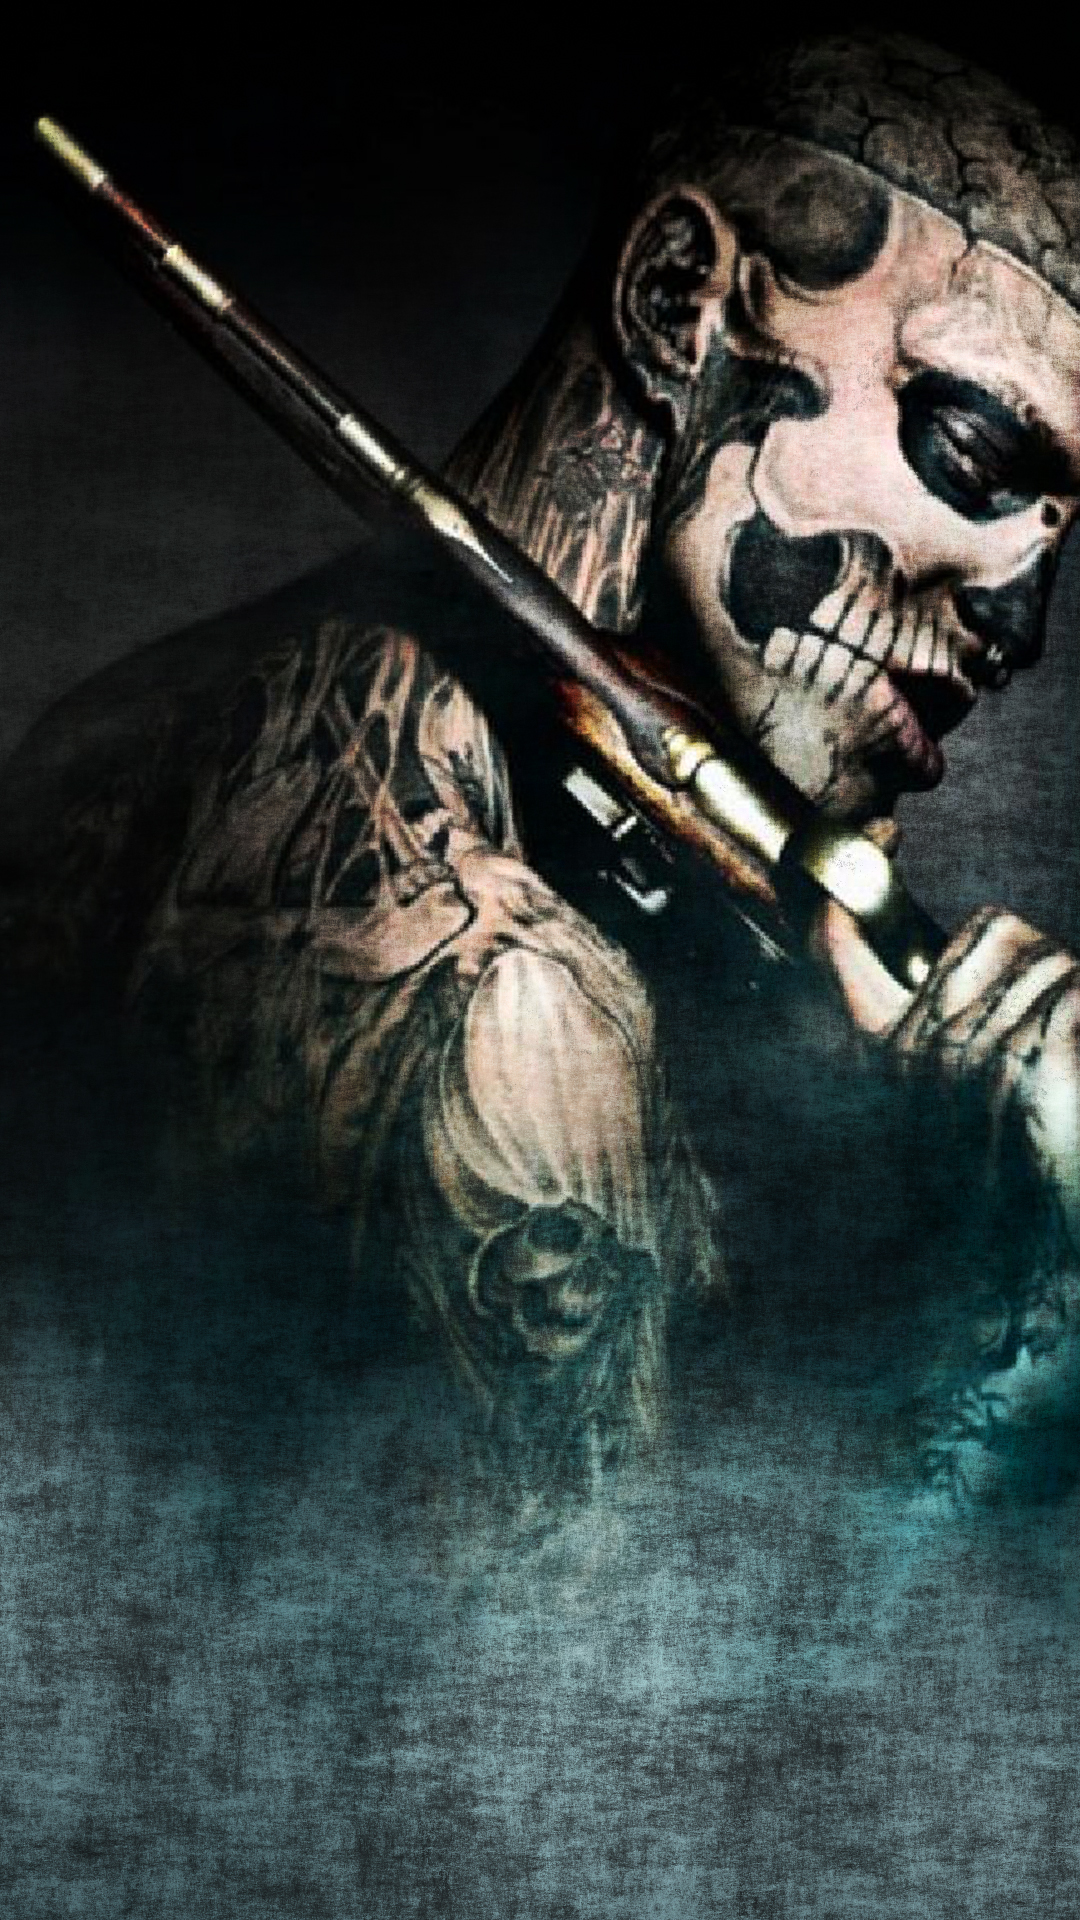 47 Ronin Hd Wallpaper For Your Mobile Phone